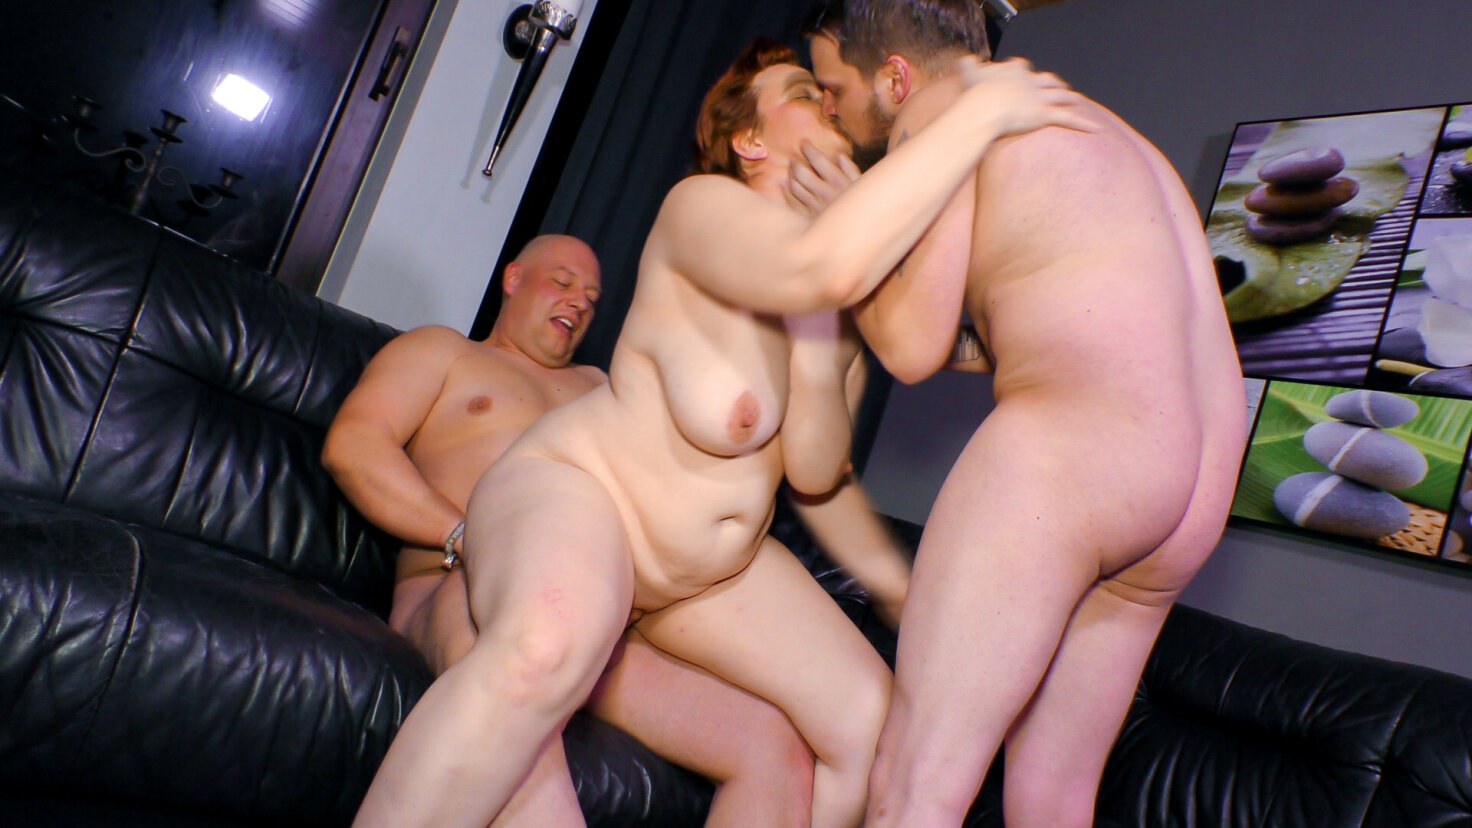 BBW German mature gets drilled by two cocks in hot threesome